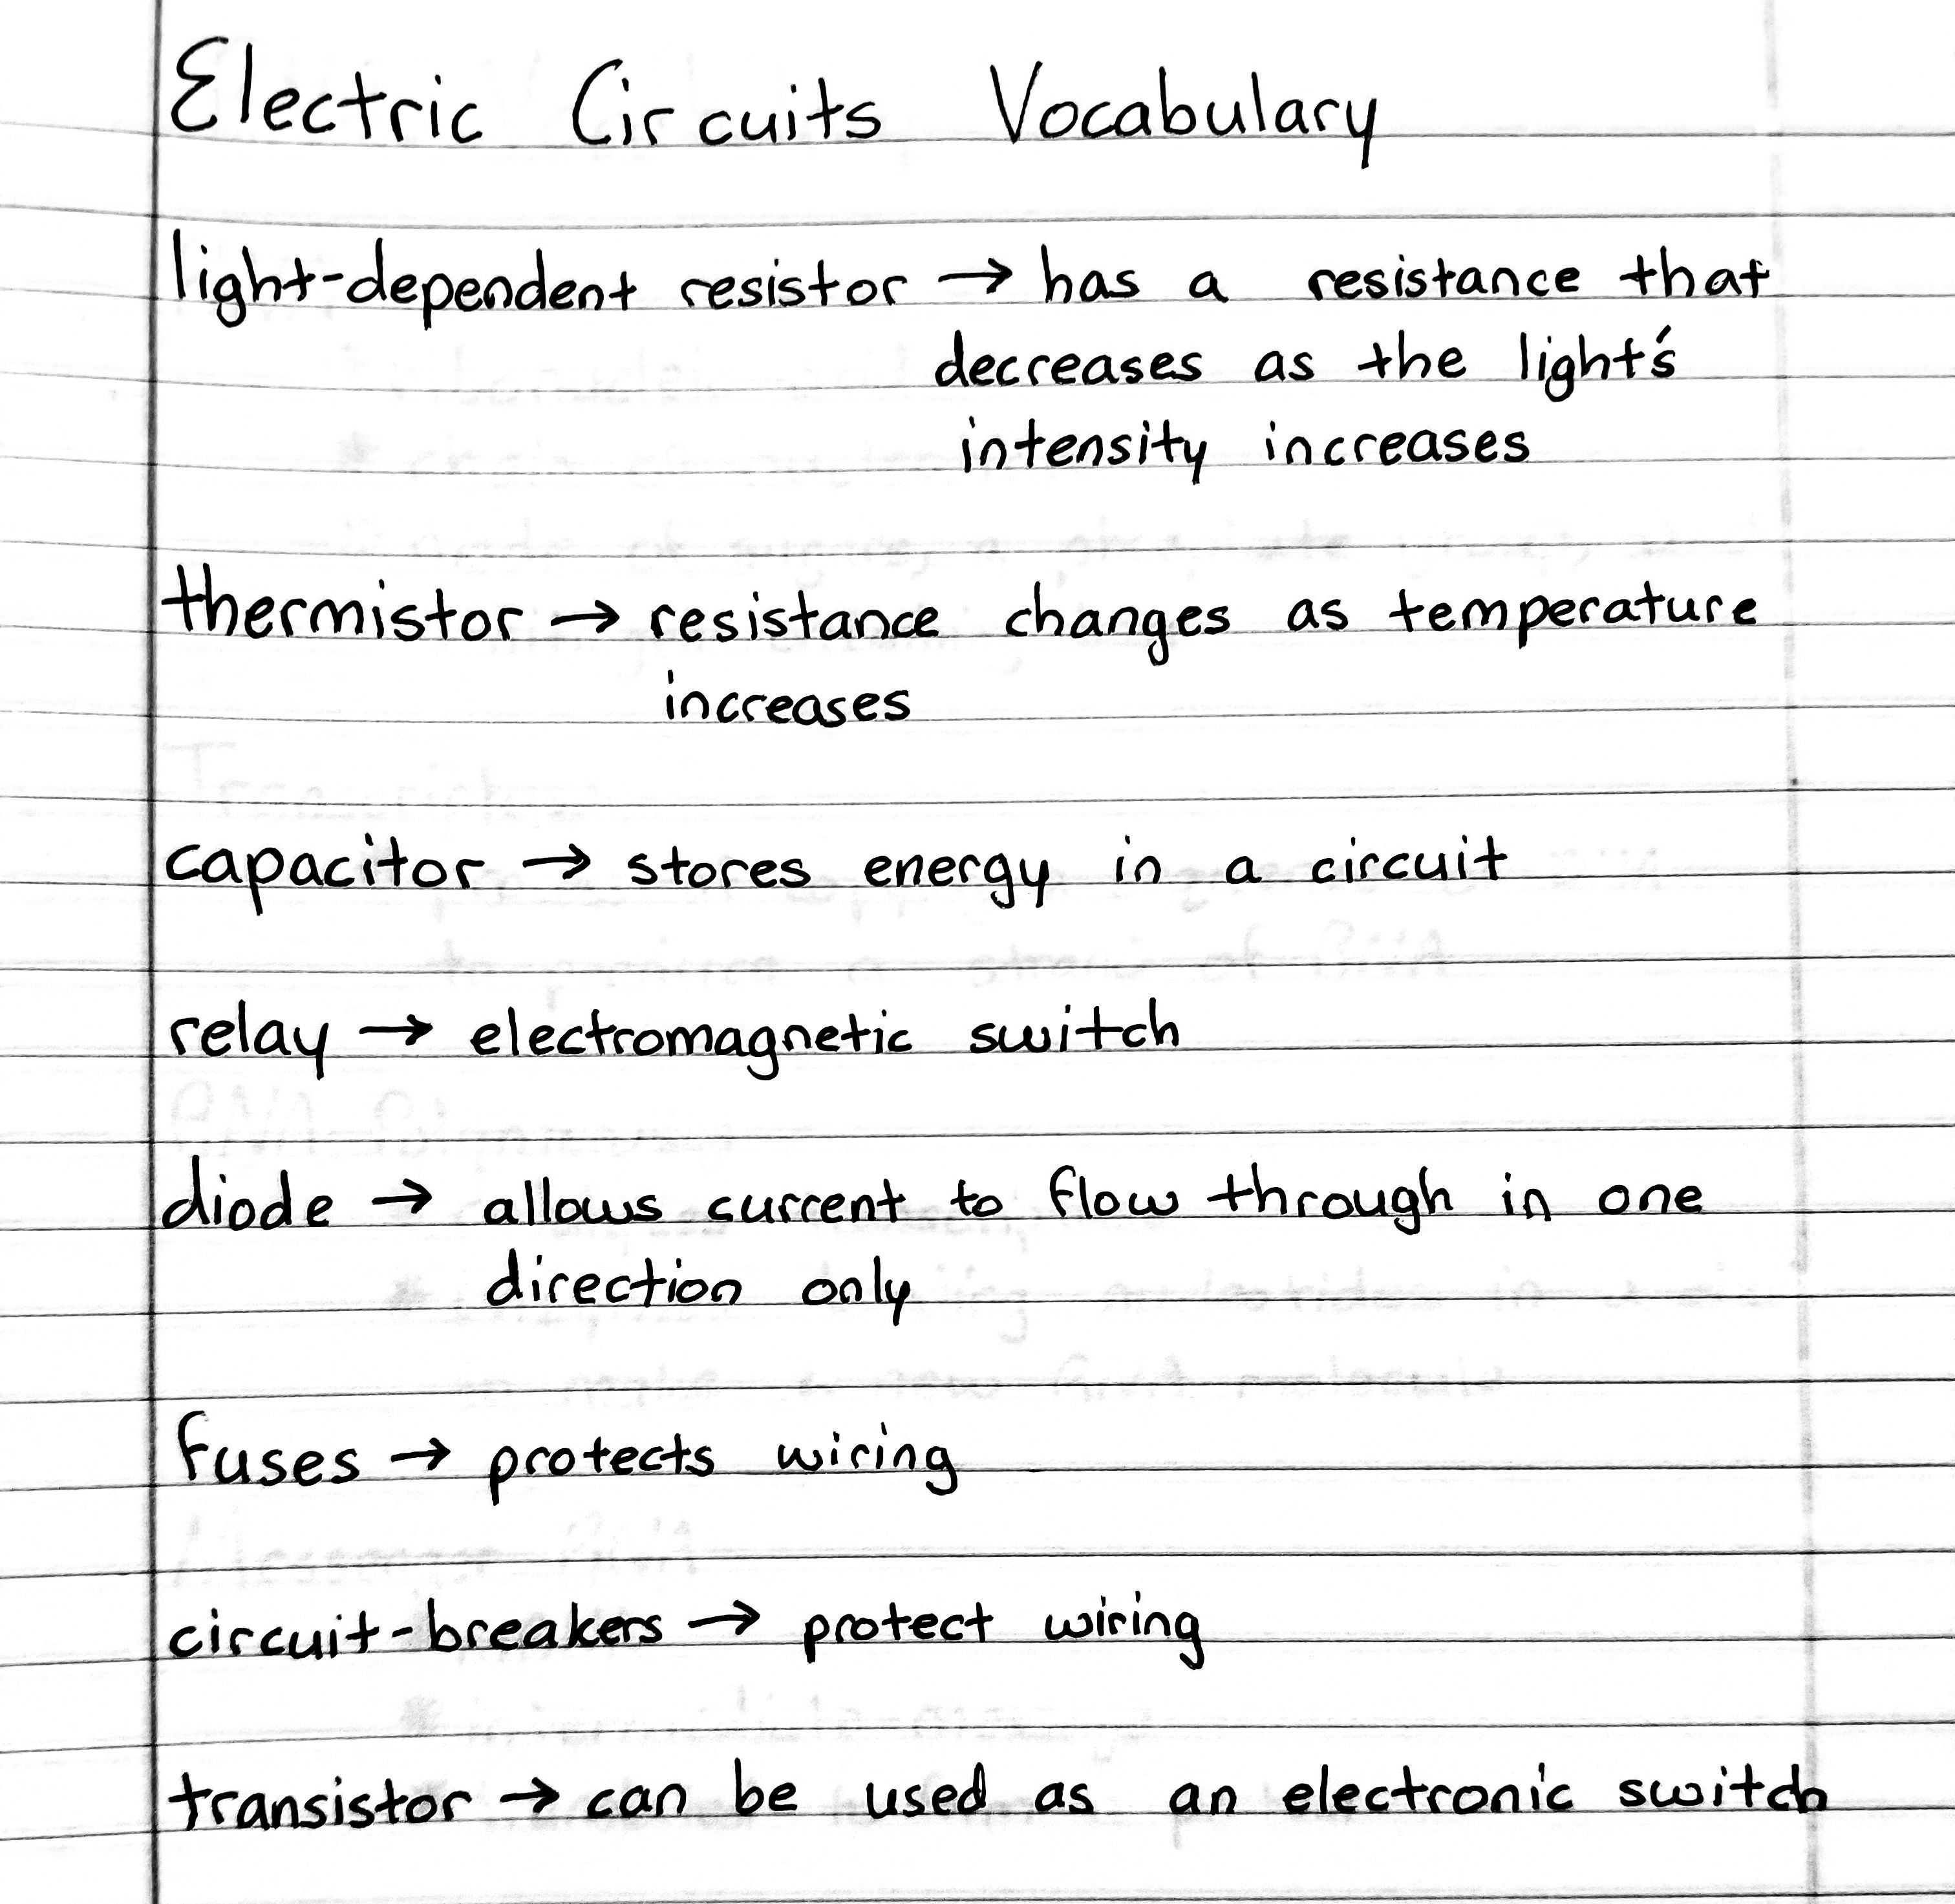 Electric Circuits Vocabulary Physics Notes Electrical Engineering Projects Electric Circuit